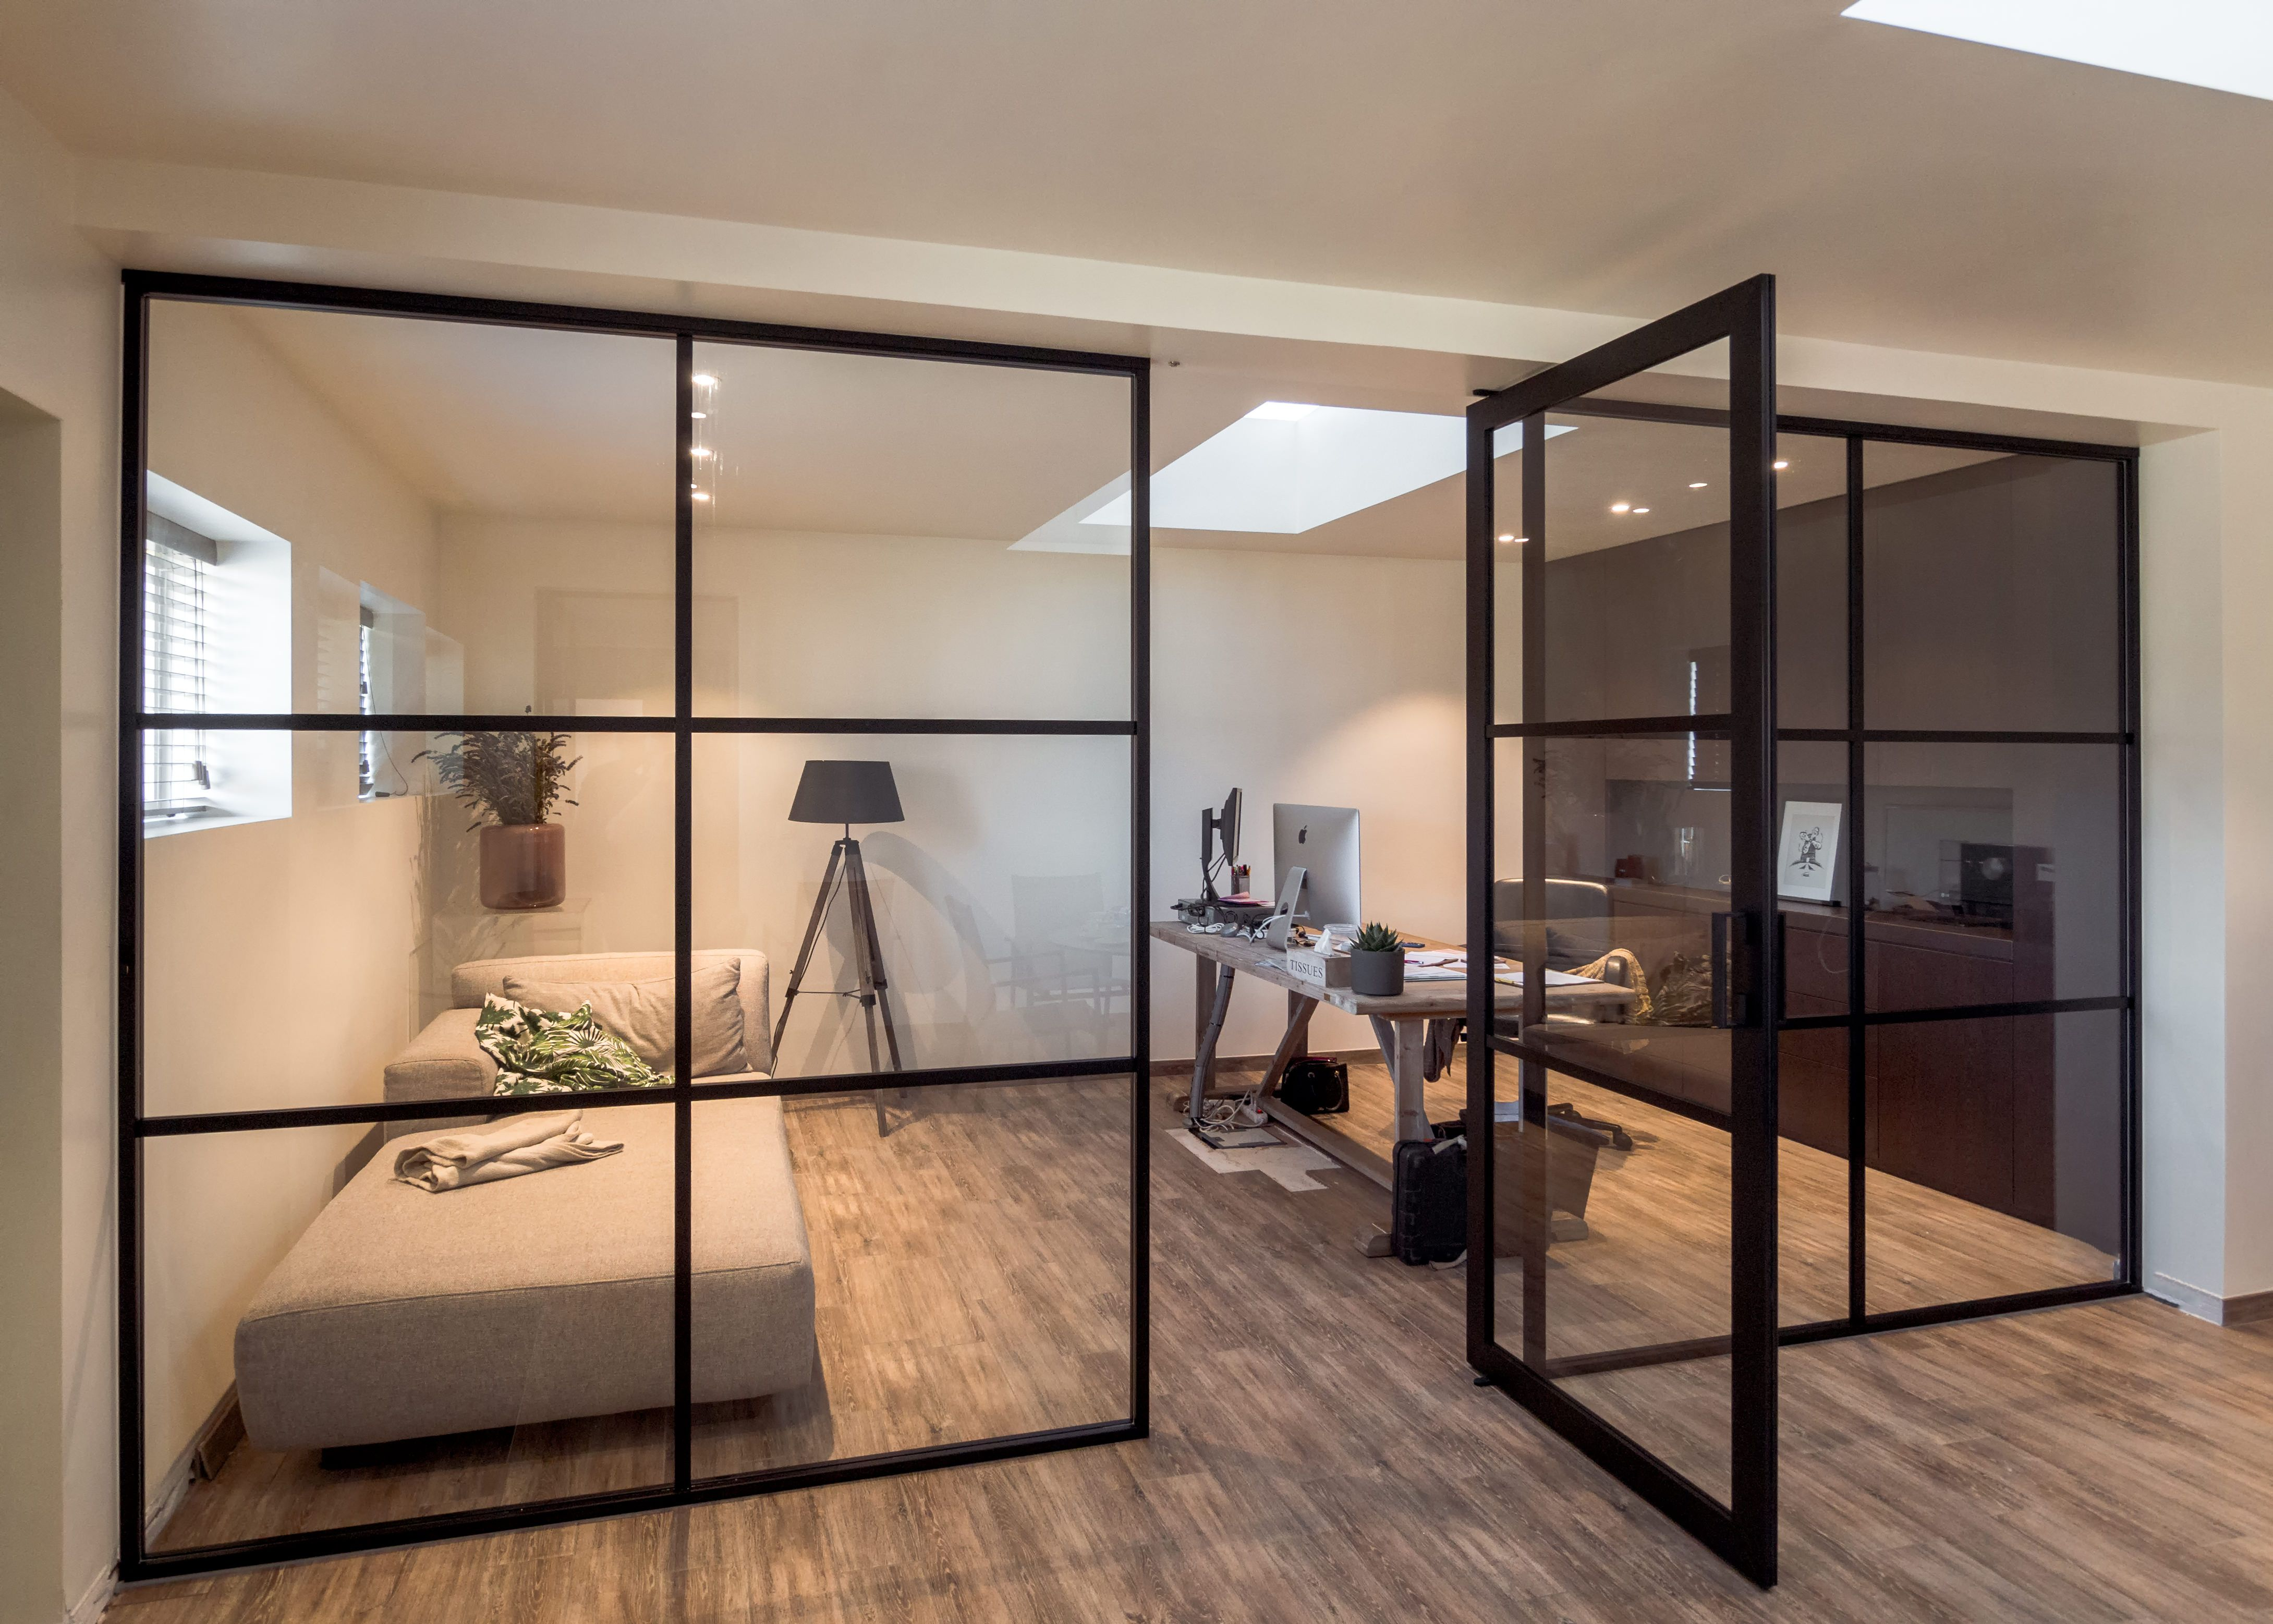 Crittall Style Home Office Setup With Fixed Glass Partitions And A